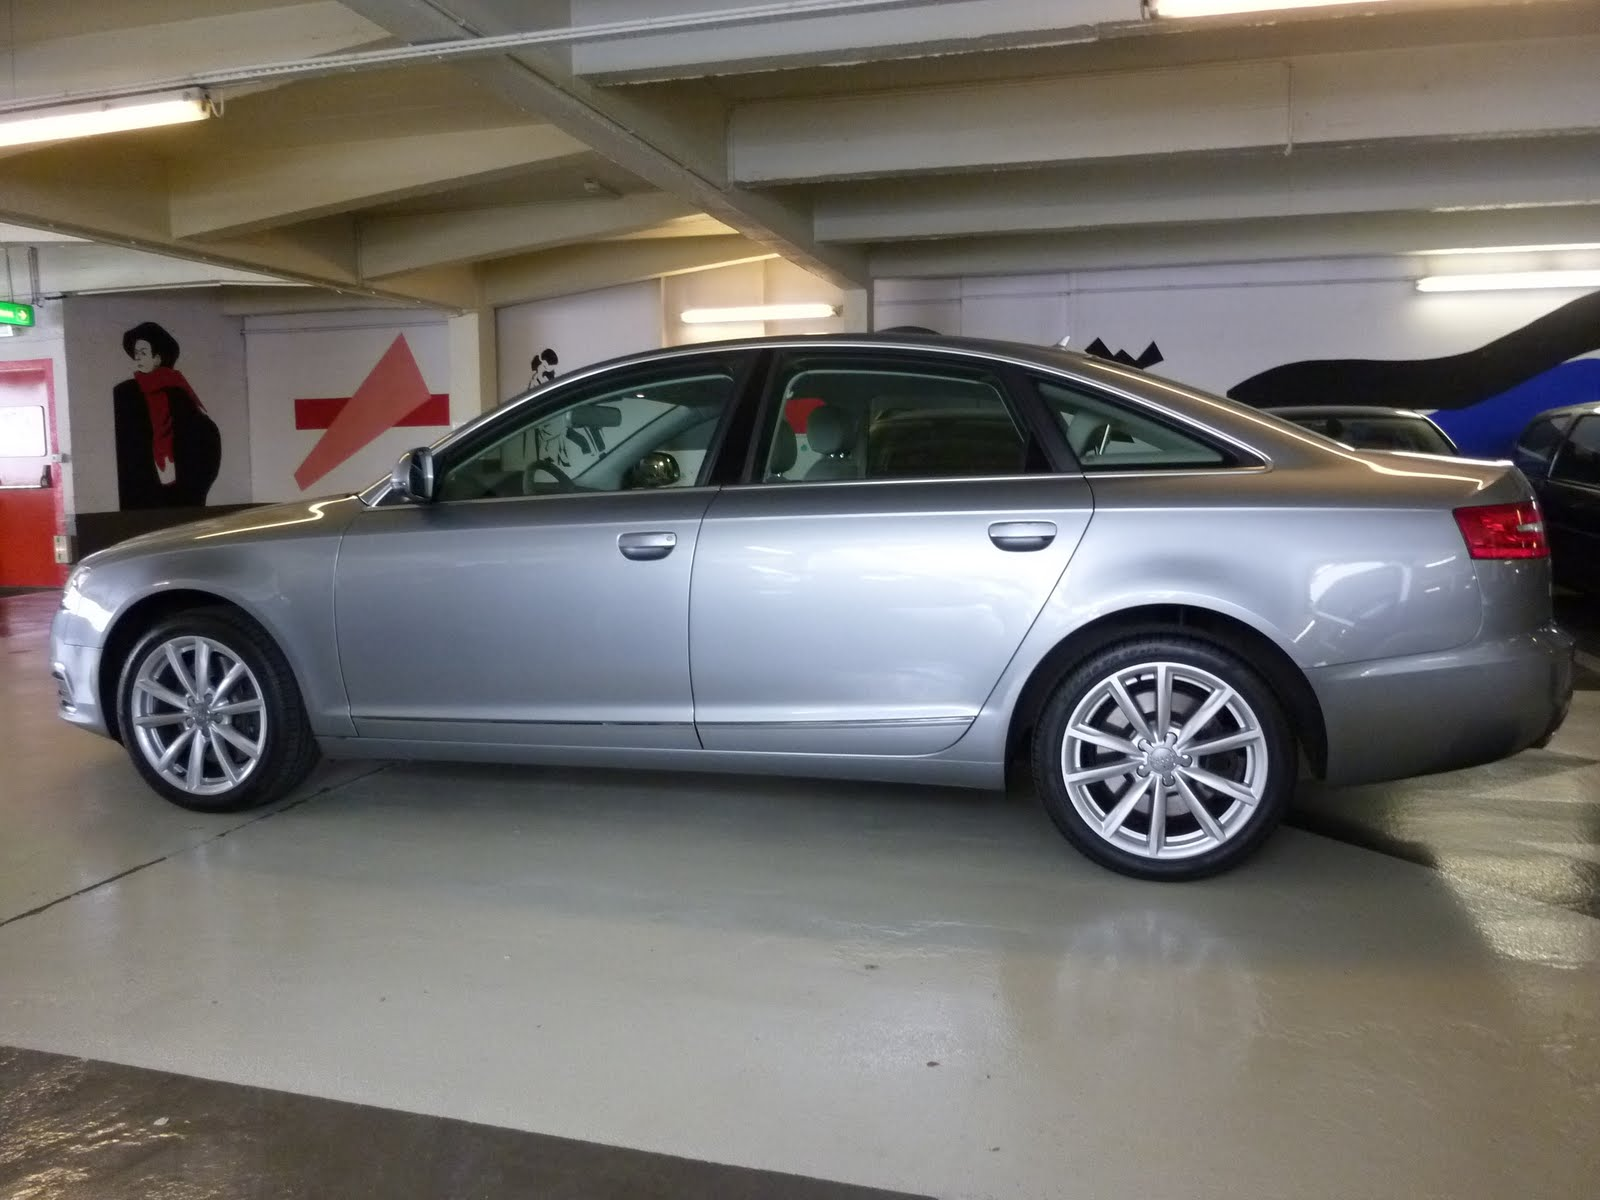 2010 audi a6 3 0 tdi quattro related infomation specifications weili automotive network. Black Bedroom Furniture Sets. Home Design Ideas